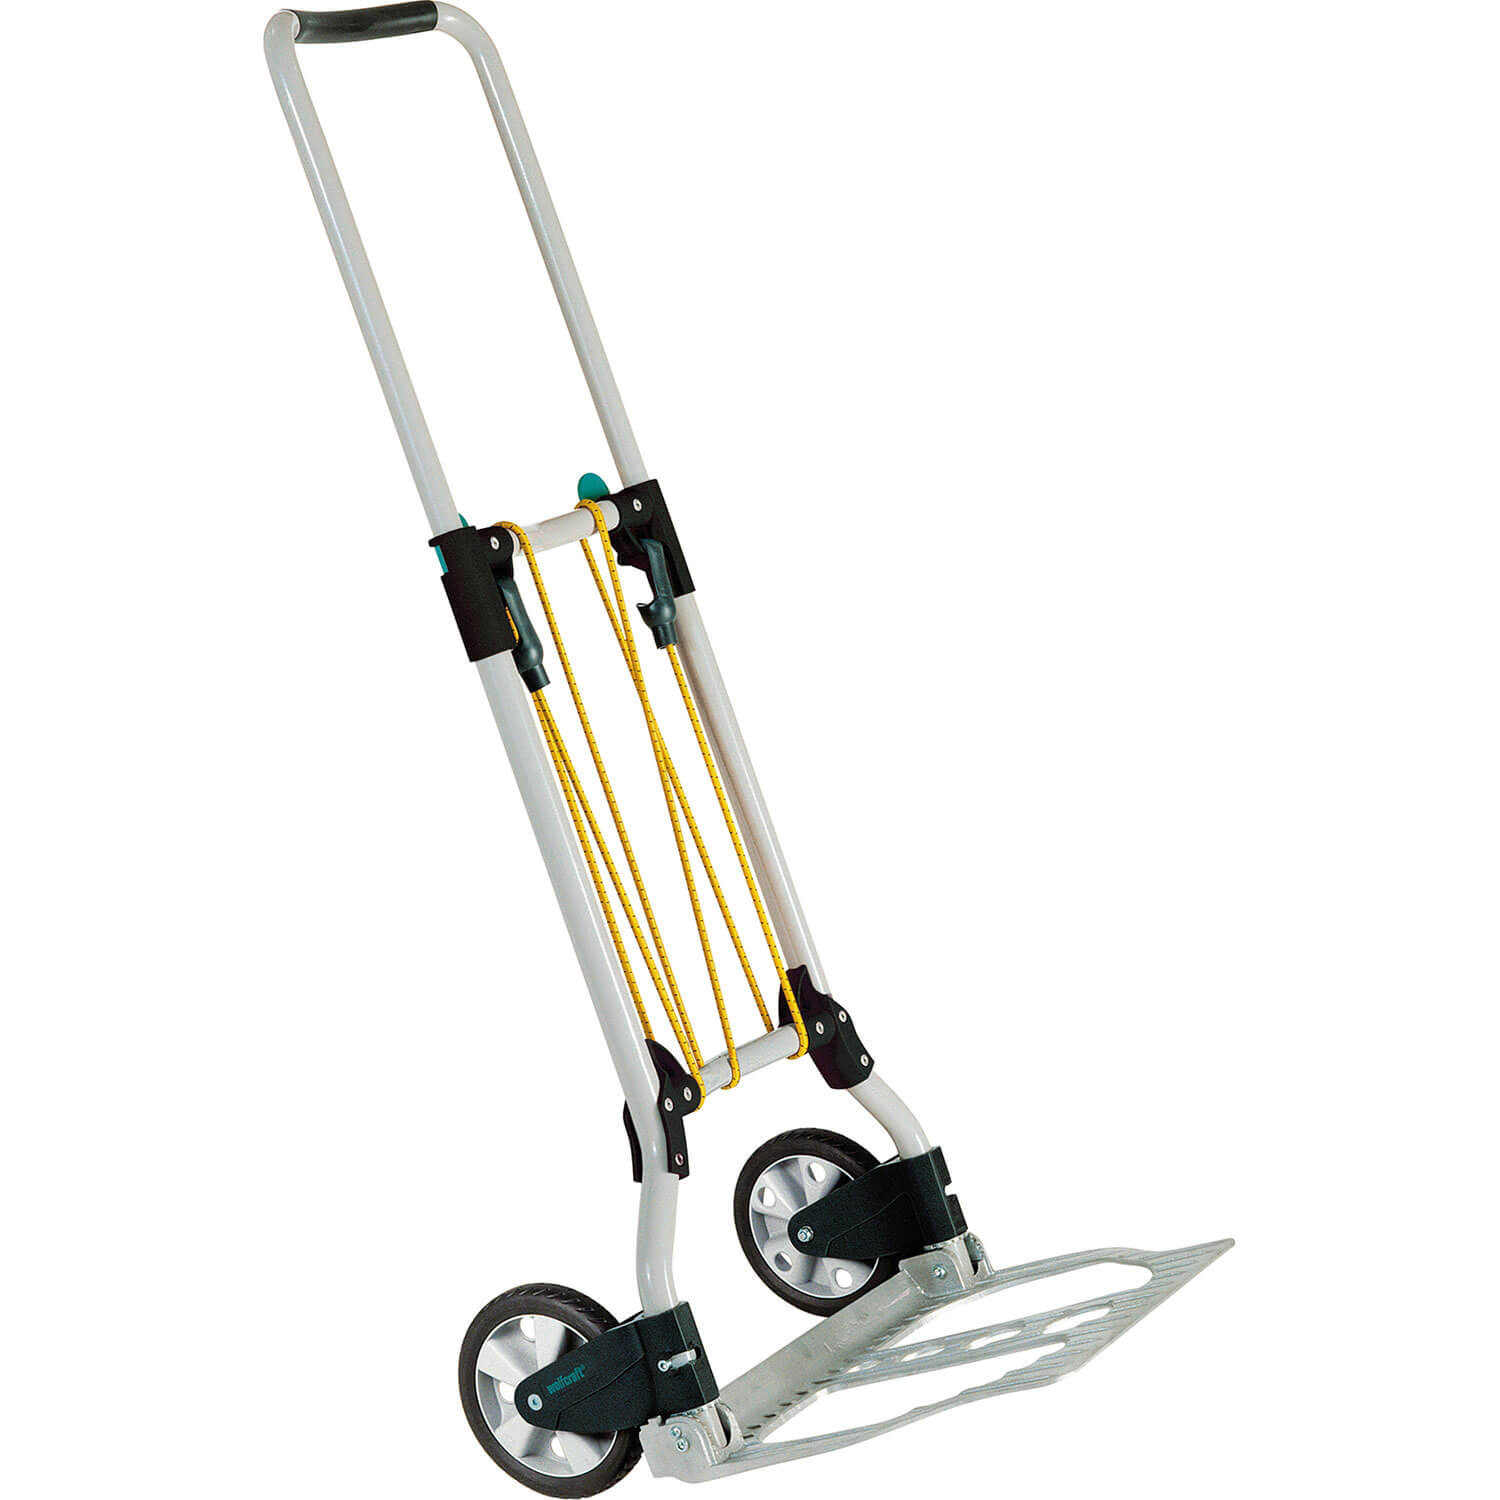 Wolfcraft TS600 Folding Lift Truck Trolley